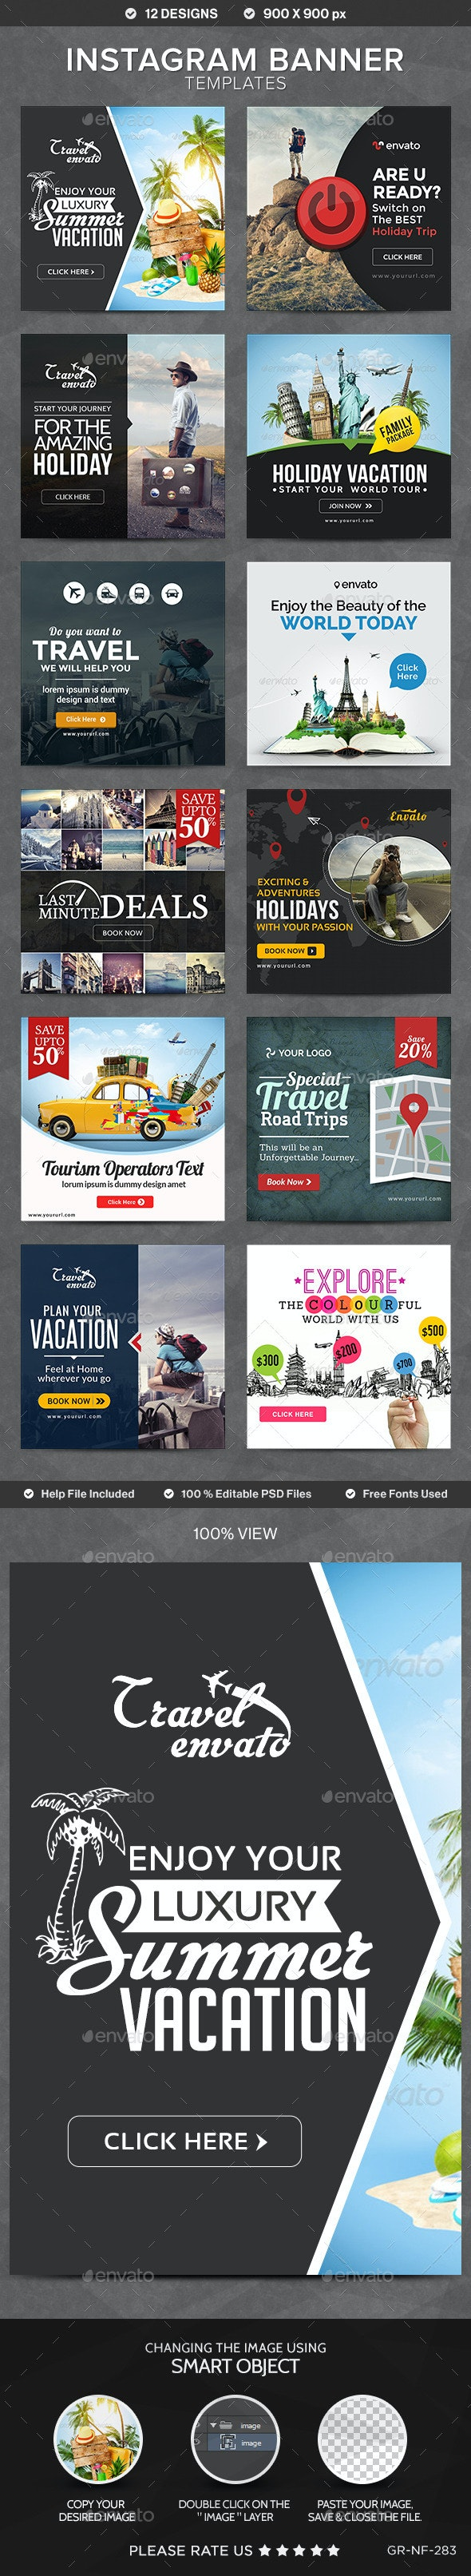 Instagram Banner Templates - 12 Designs - Banners & Ads Web Elements